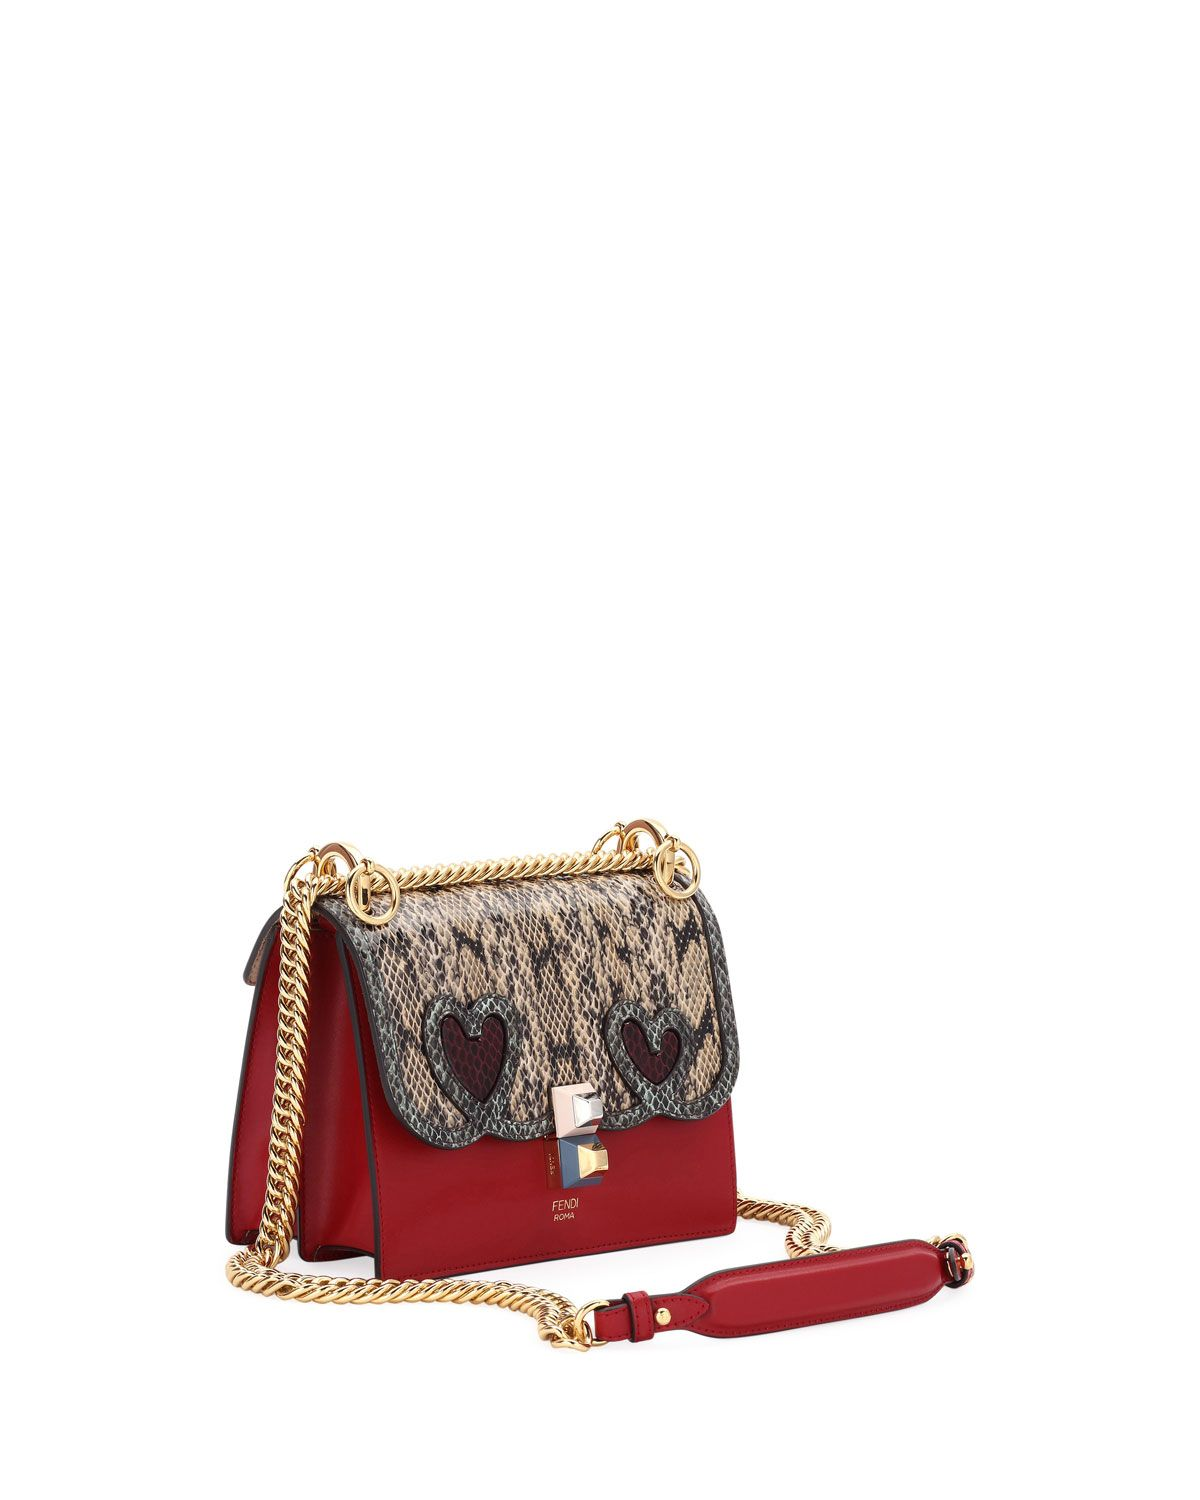 Fendi Kan I Small Calf and Snake Shoulder Bag  7435d5ac35e22